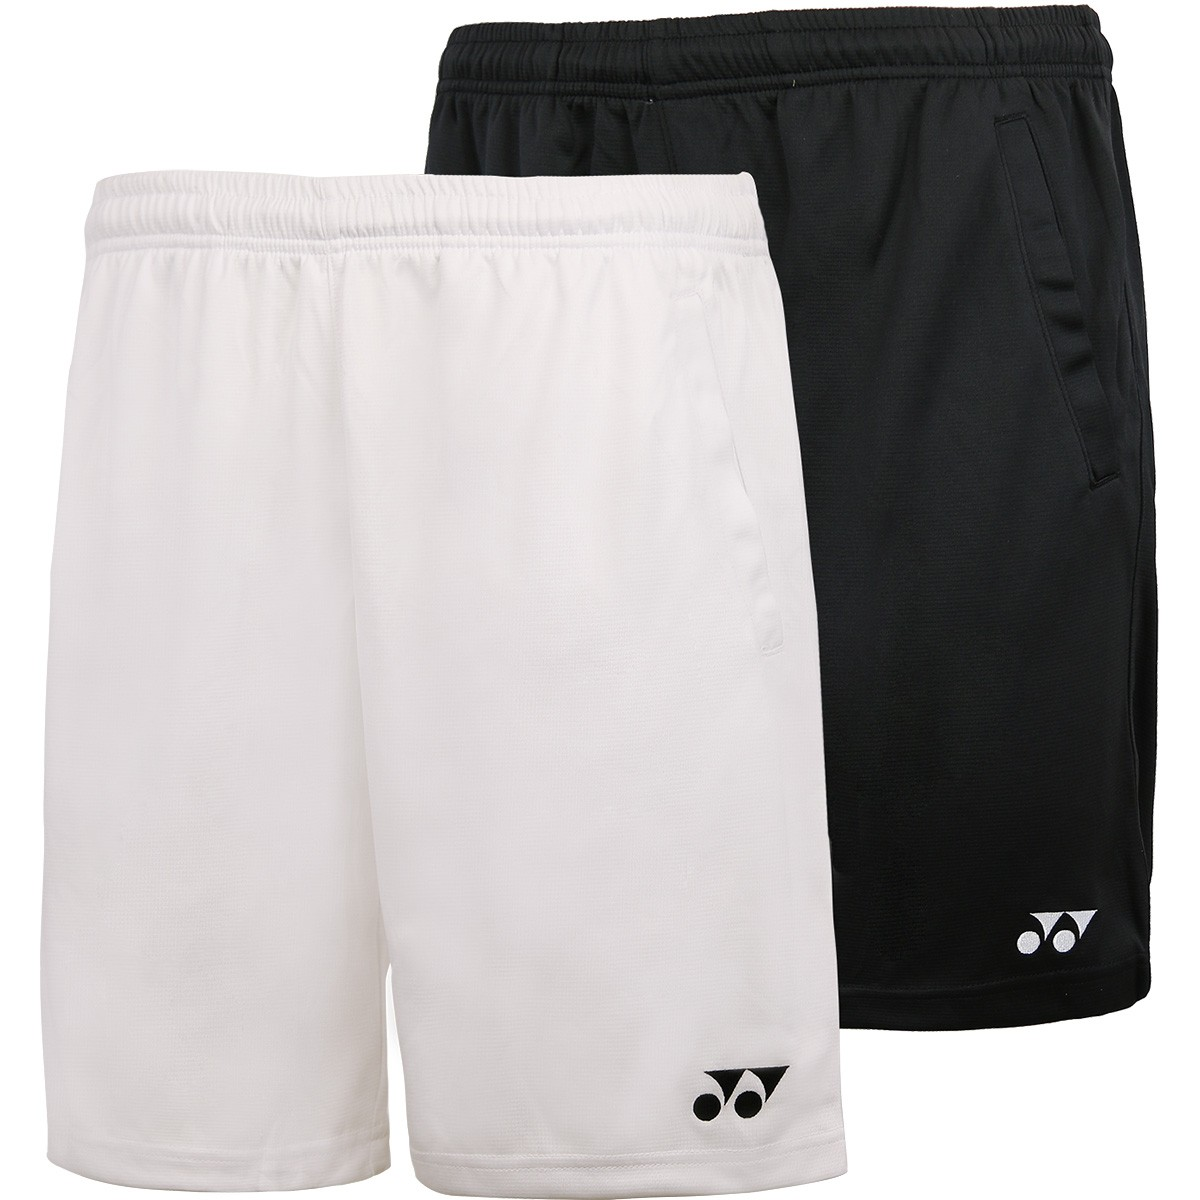 Junior Yonex Team Shorts Yonex Juniors Clothing